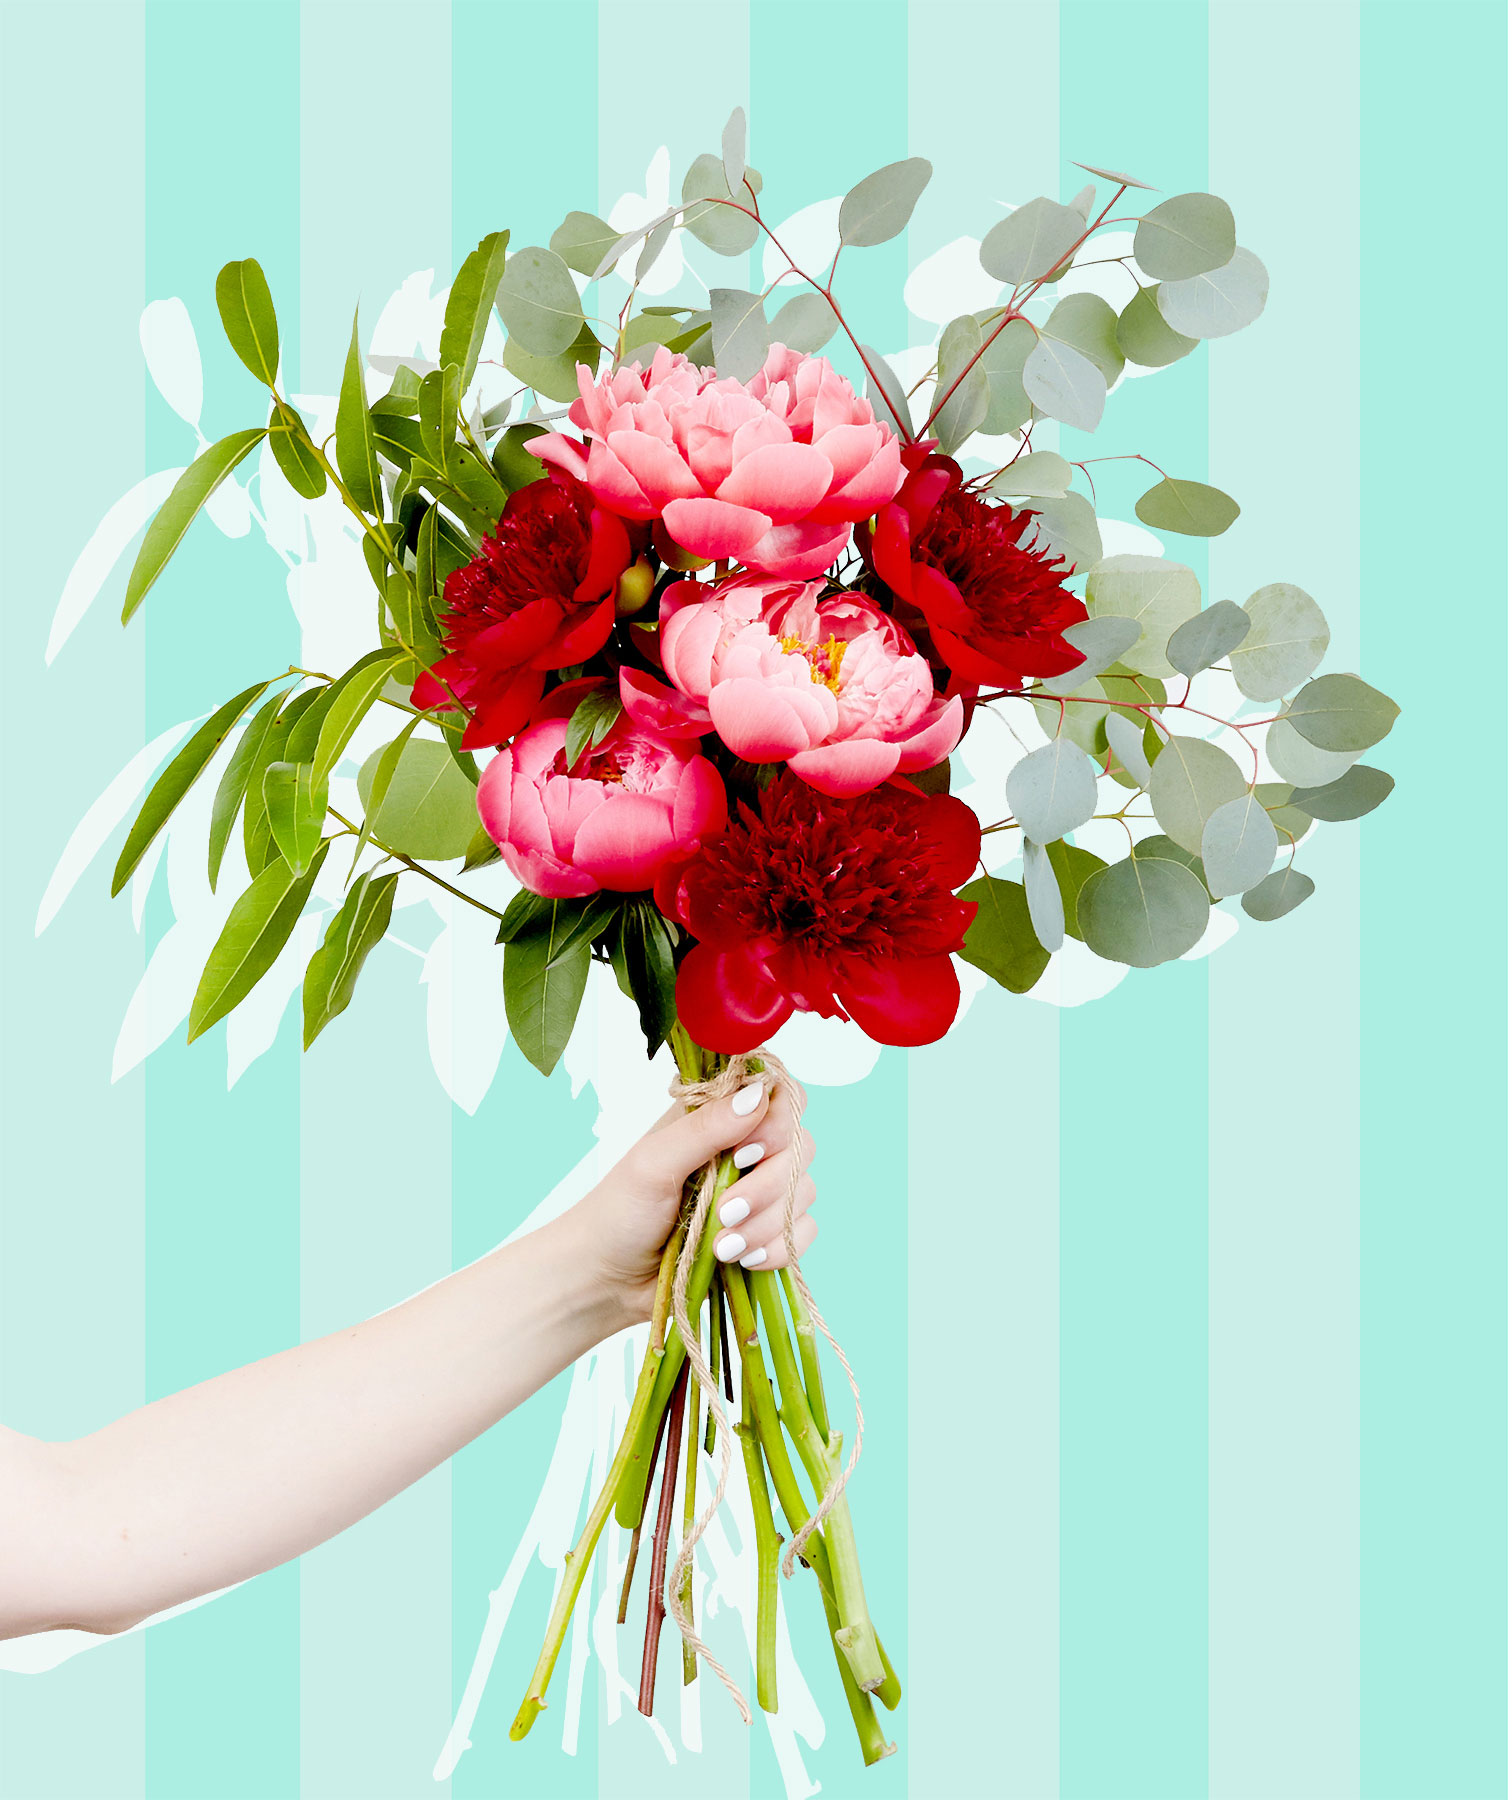 How To Care For Peonies Real Simple